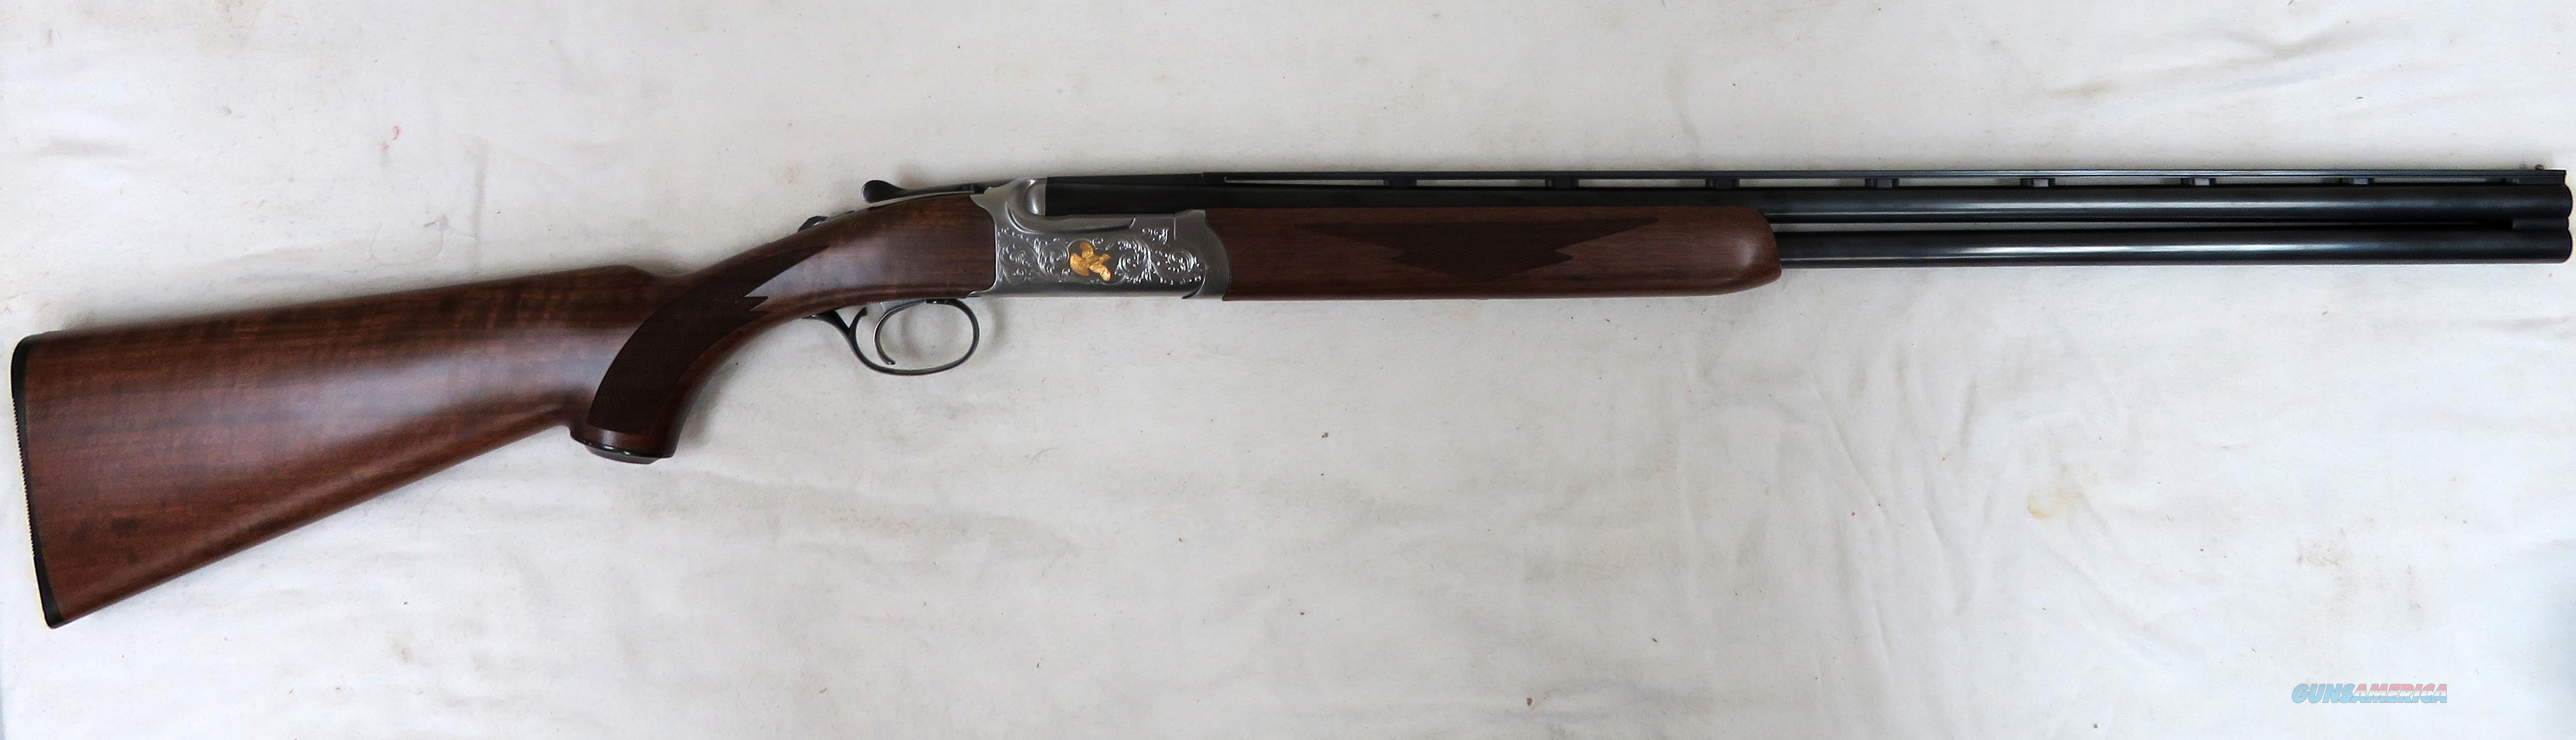 "RUGER RED LABEL 50 YEAR COMMEMORATIVE 28GA 26""  Guns > Shotguns > Ruger Shotguns > Hunting"